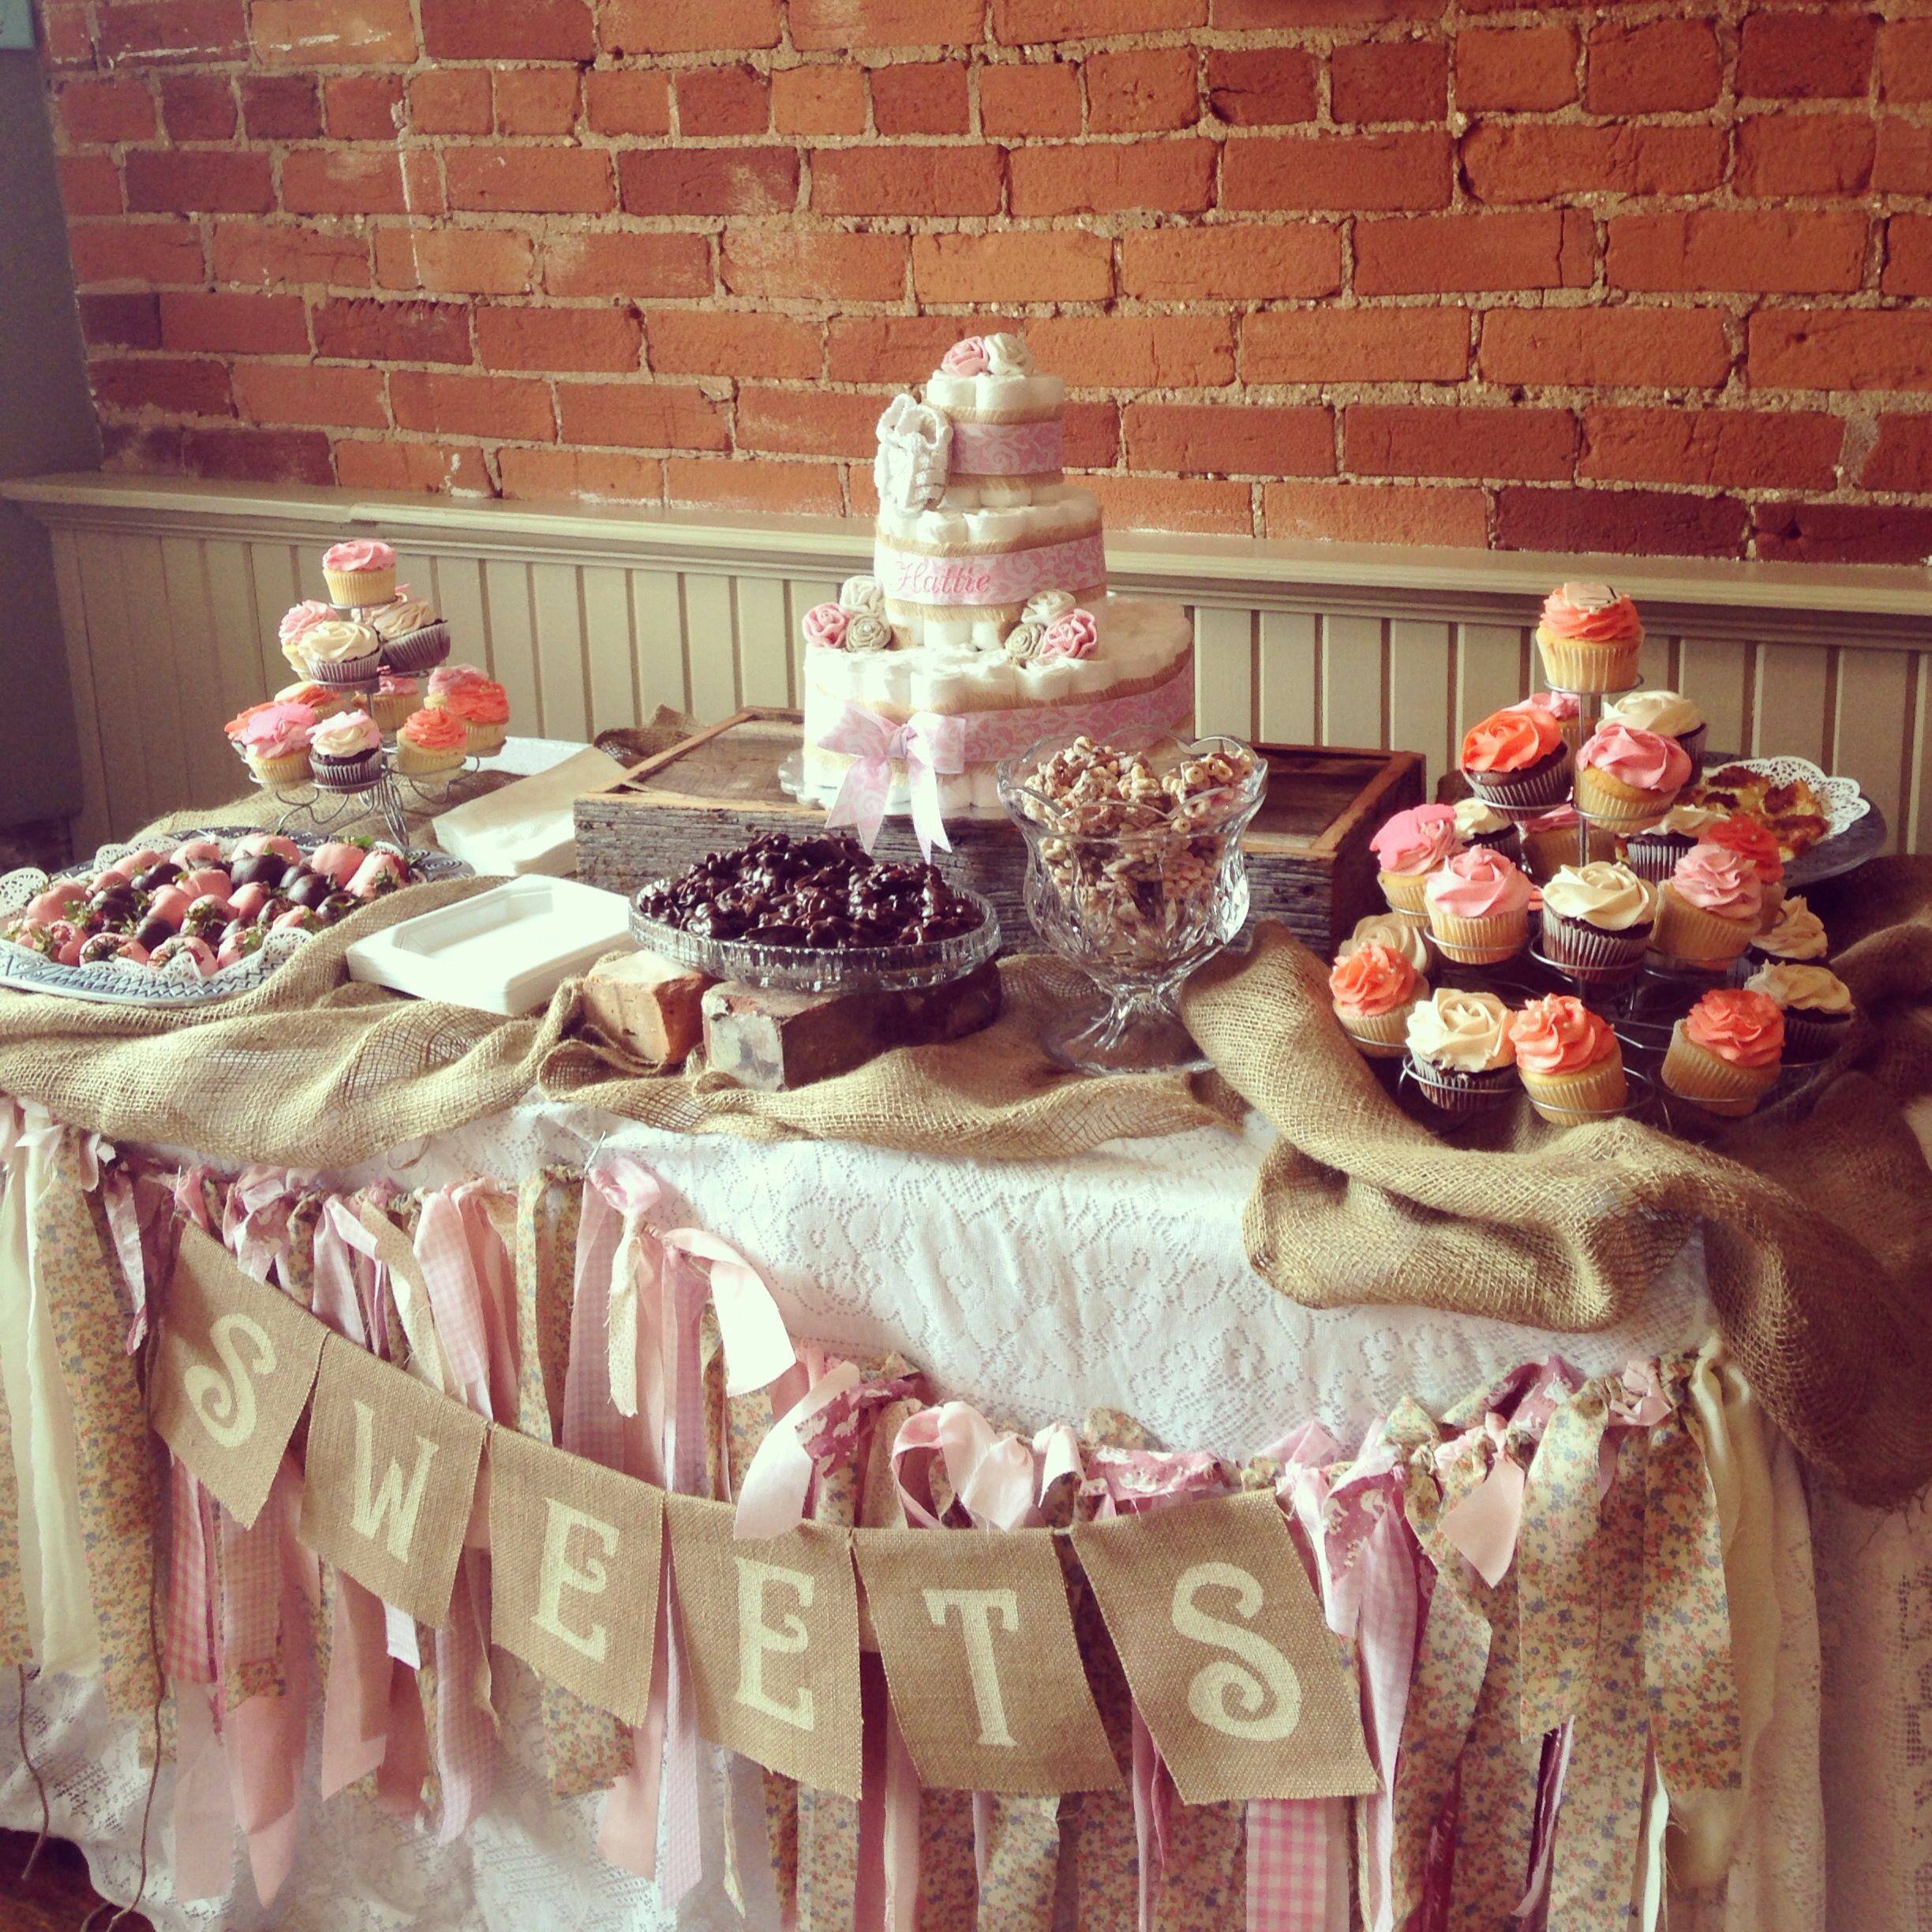 39++ Baby shower cakes near me prices ideas in 2021